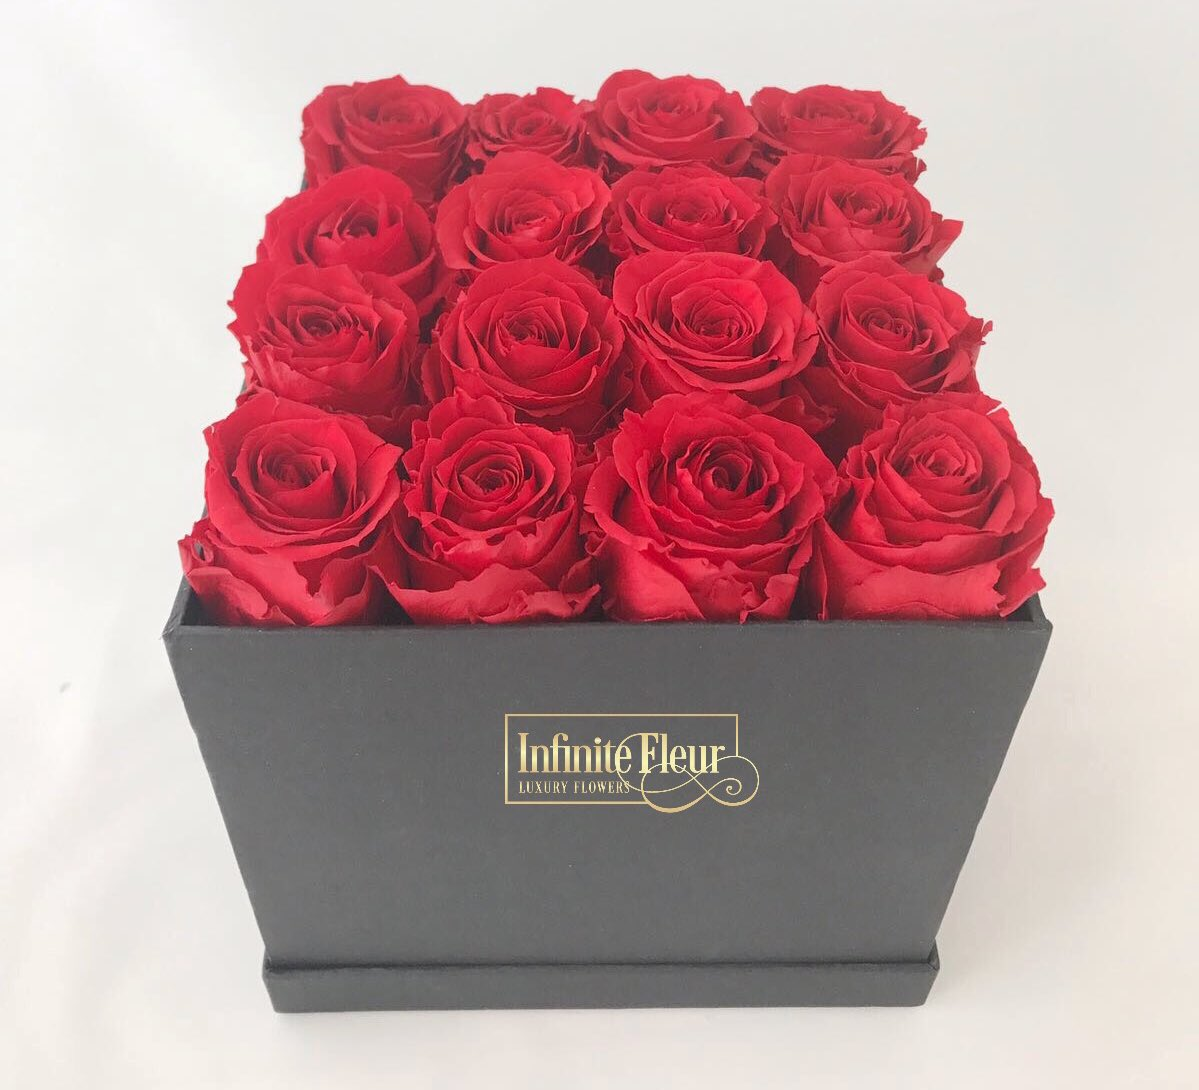 Infinite Fleur On Twitter Gorgeous Roses Deserve To Last Forever Infinitefleur Rose Hellogorgeous Luxuryflowers Flowerdelivery Gift Boxofroses